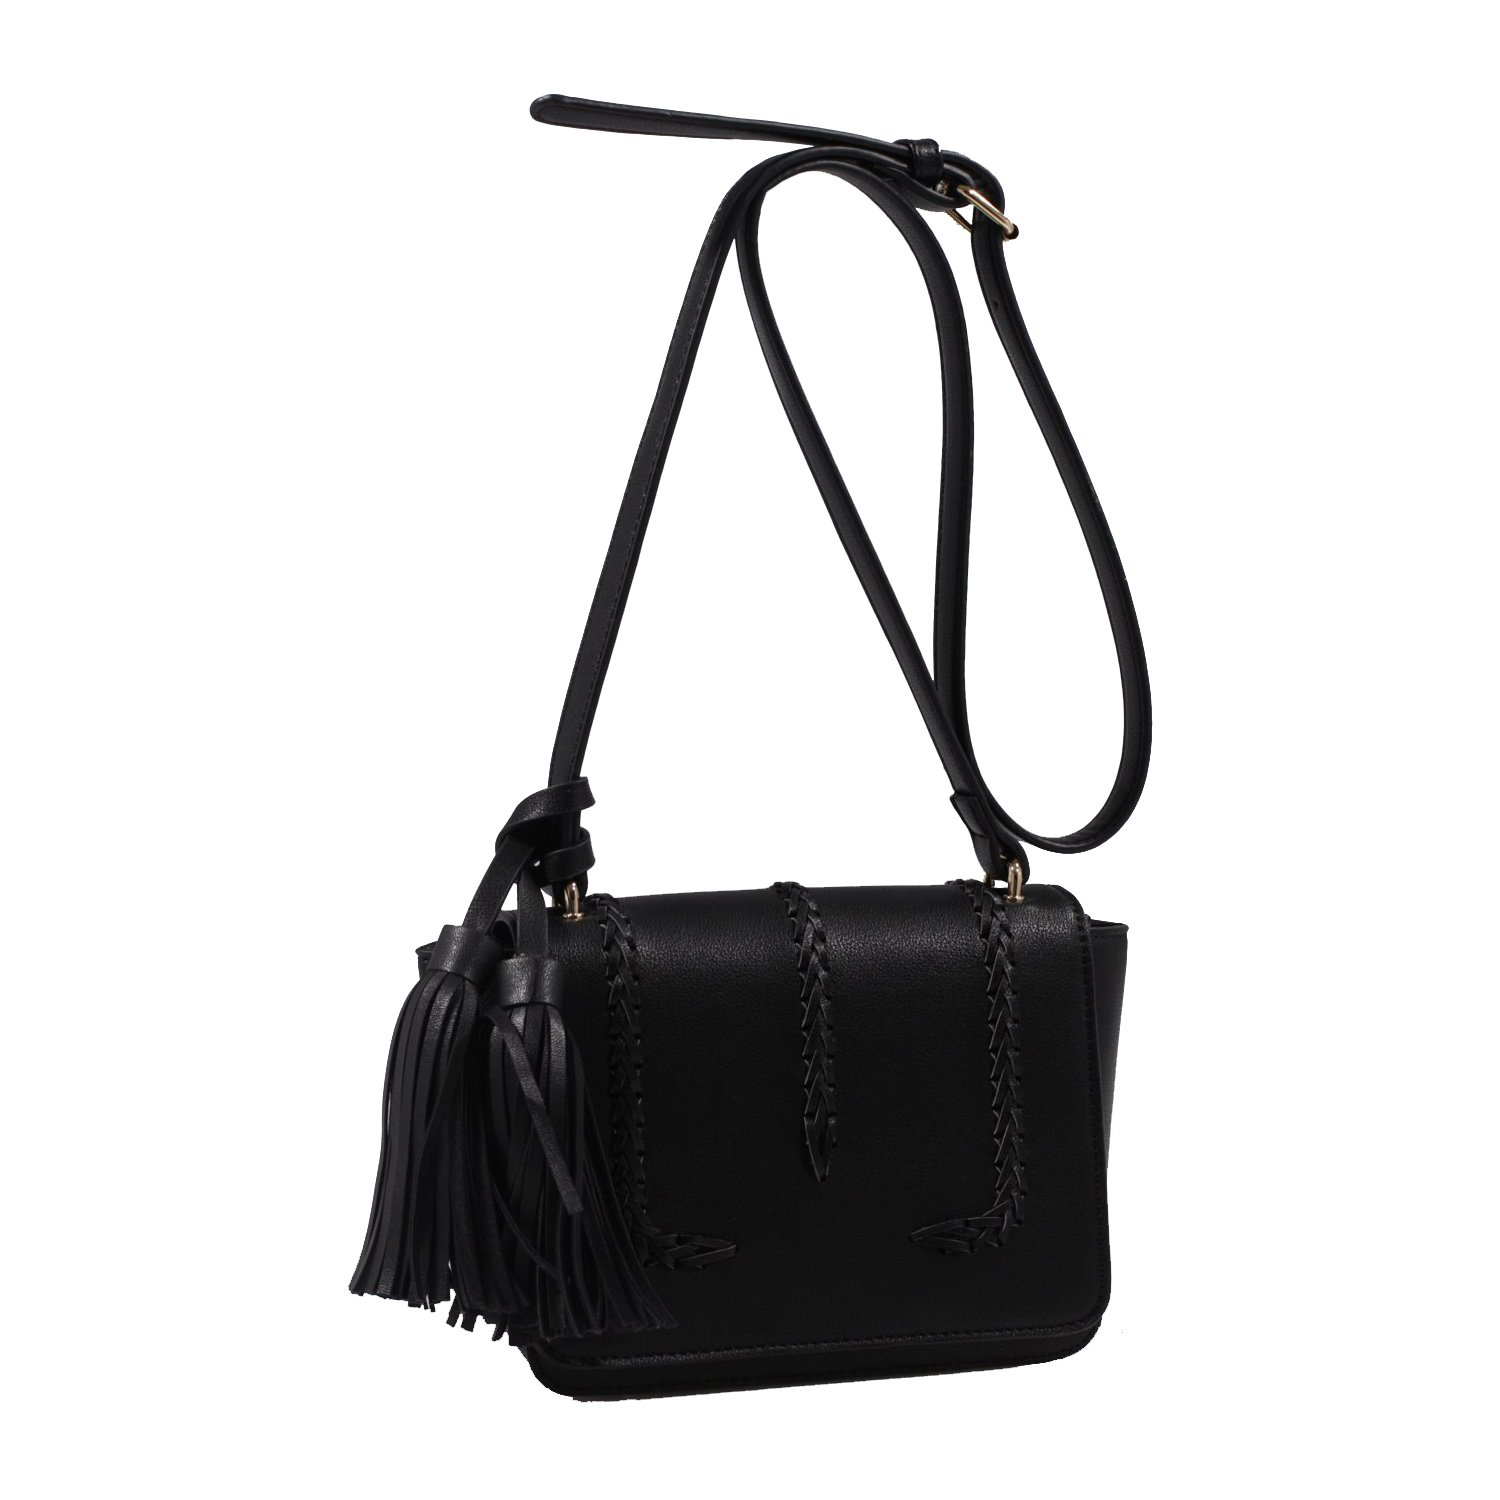 21570feb65c6 Isabelle Designer Inspired Whipstitched Faux Leather Crossbody Bags -  Black: Handbags: Amazon.com